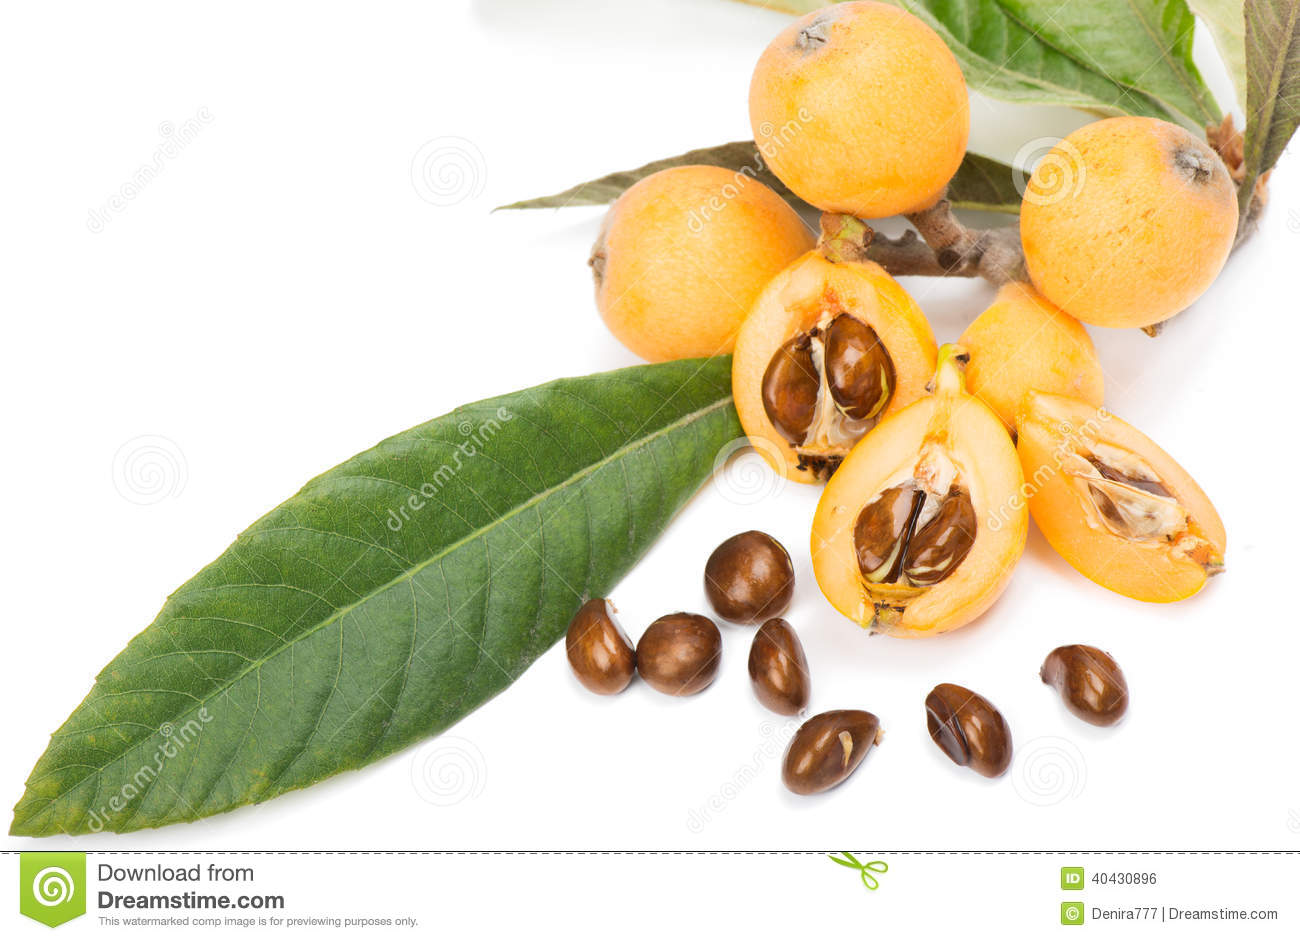 fruit de loquat cognassier du japon l d 39 eriobotrya photo stock image du orange nourriture. Black Bedroom Furniture Sets. Home Design Ideas